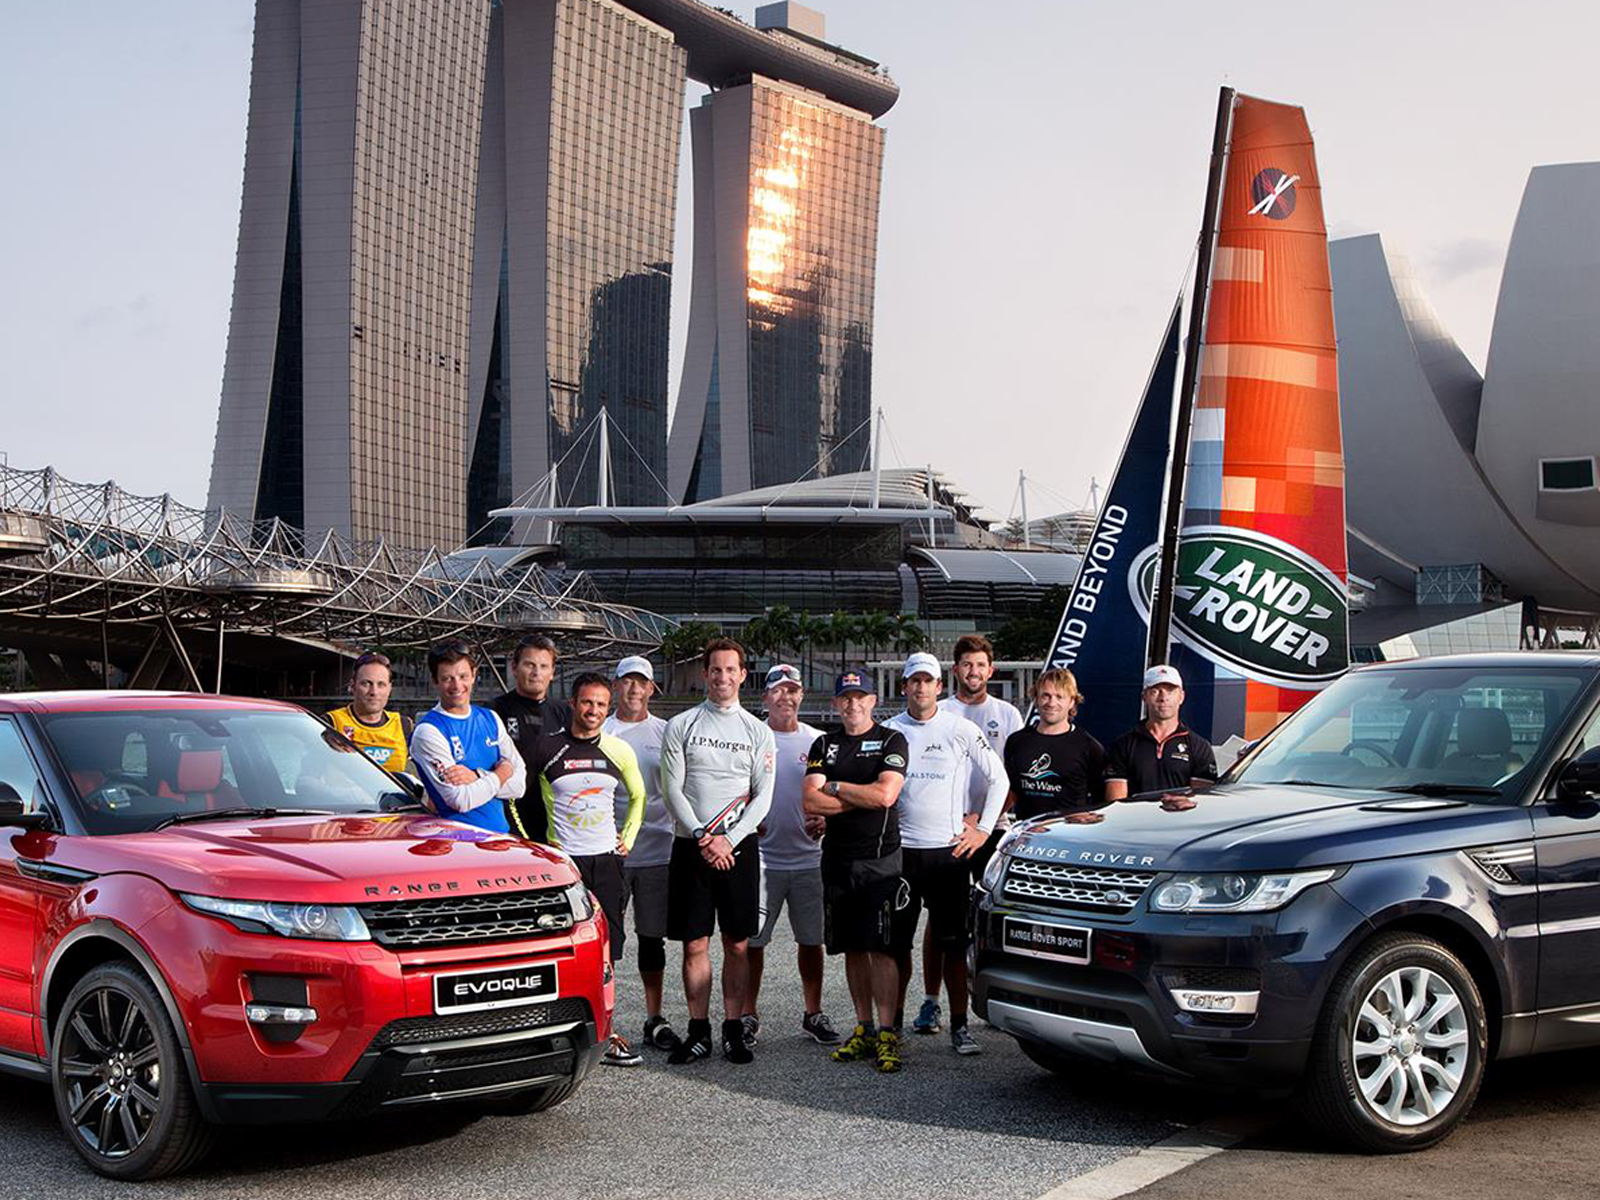 Extreme Sailing Series Land Rover Case Study